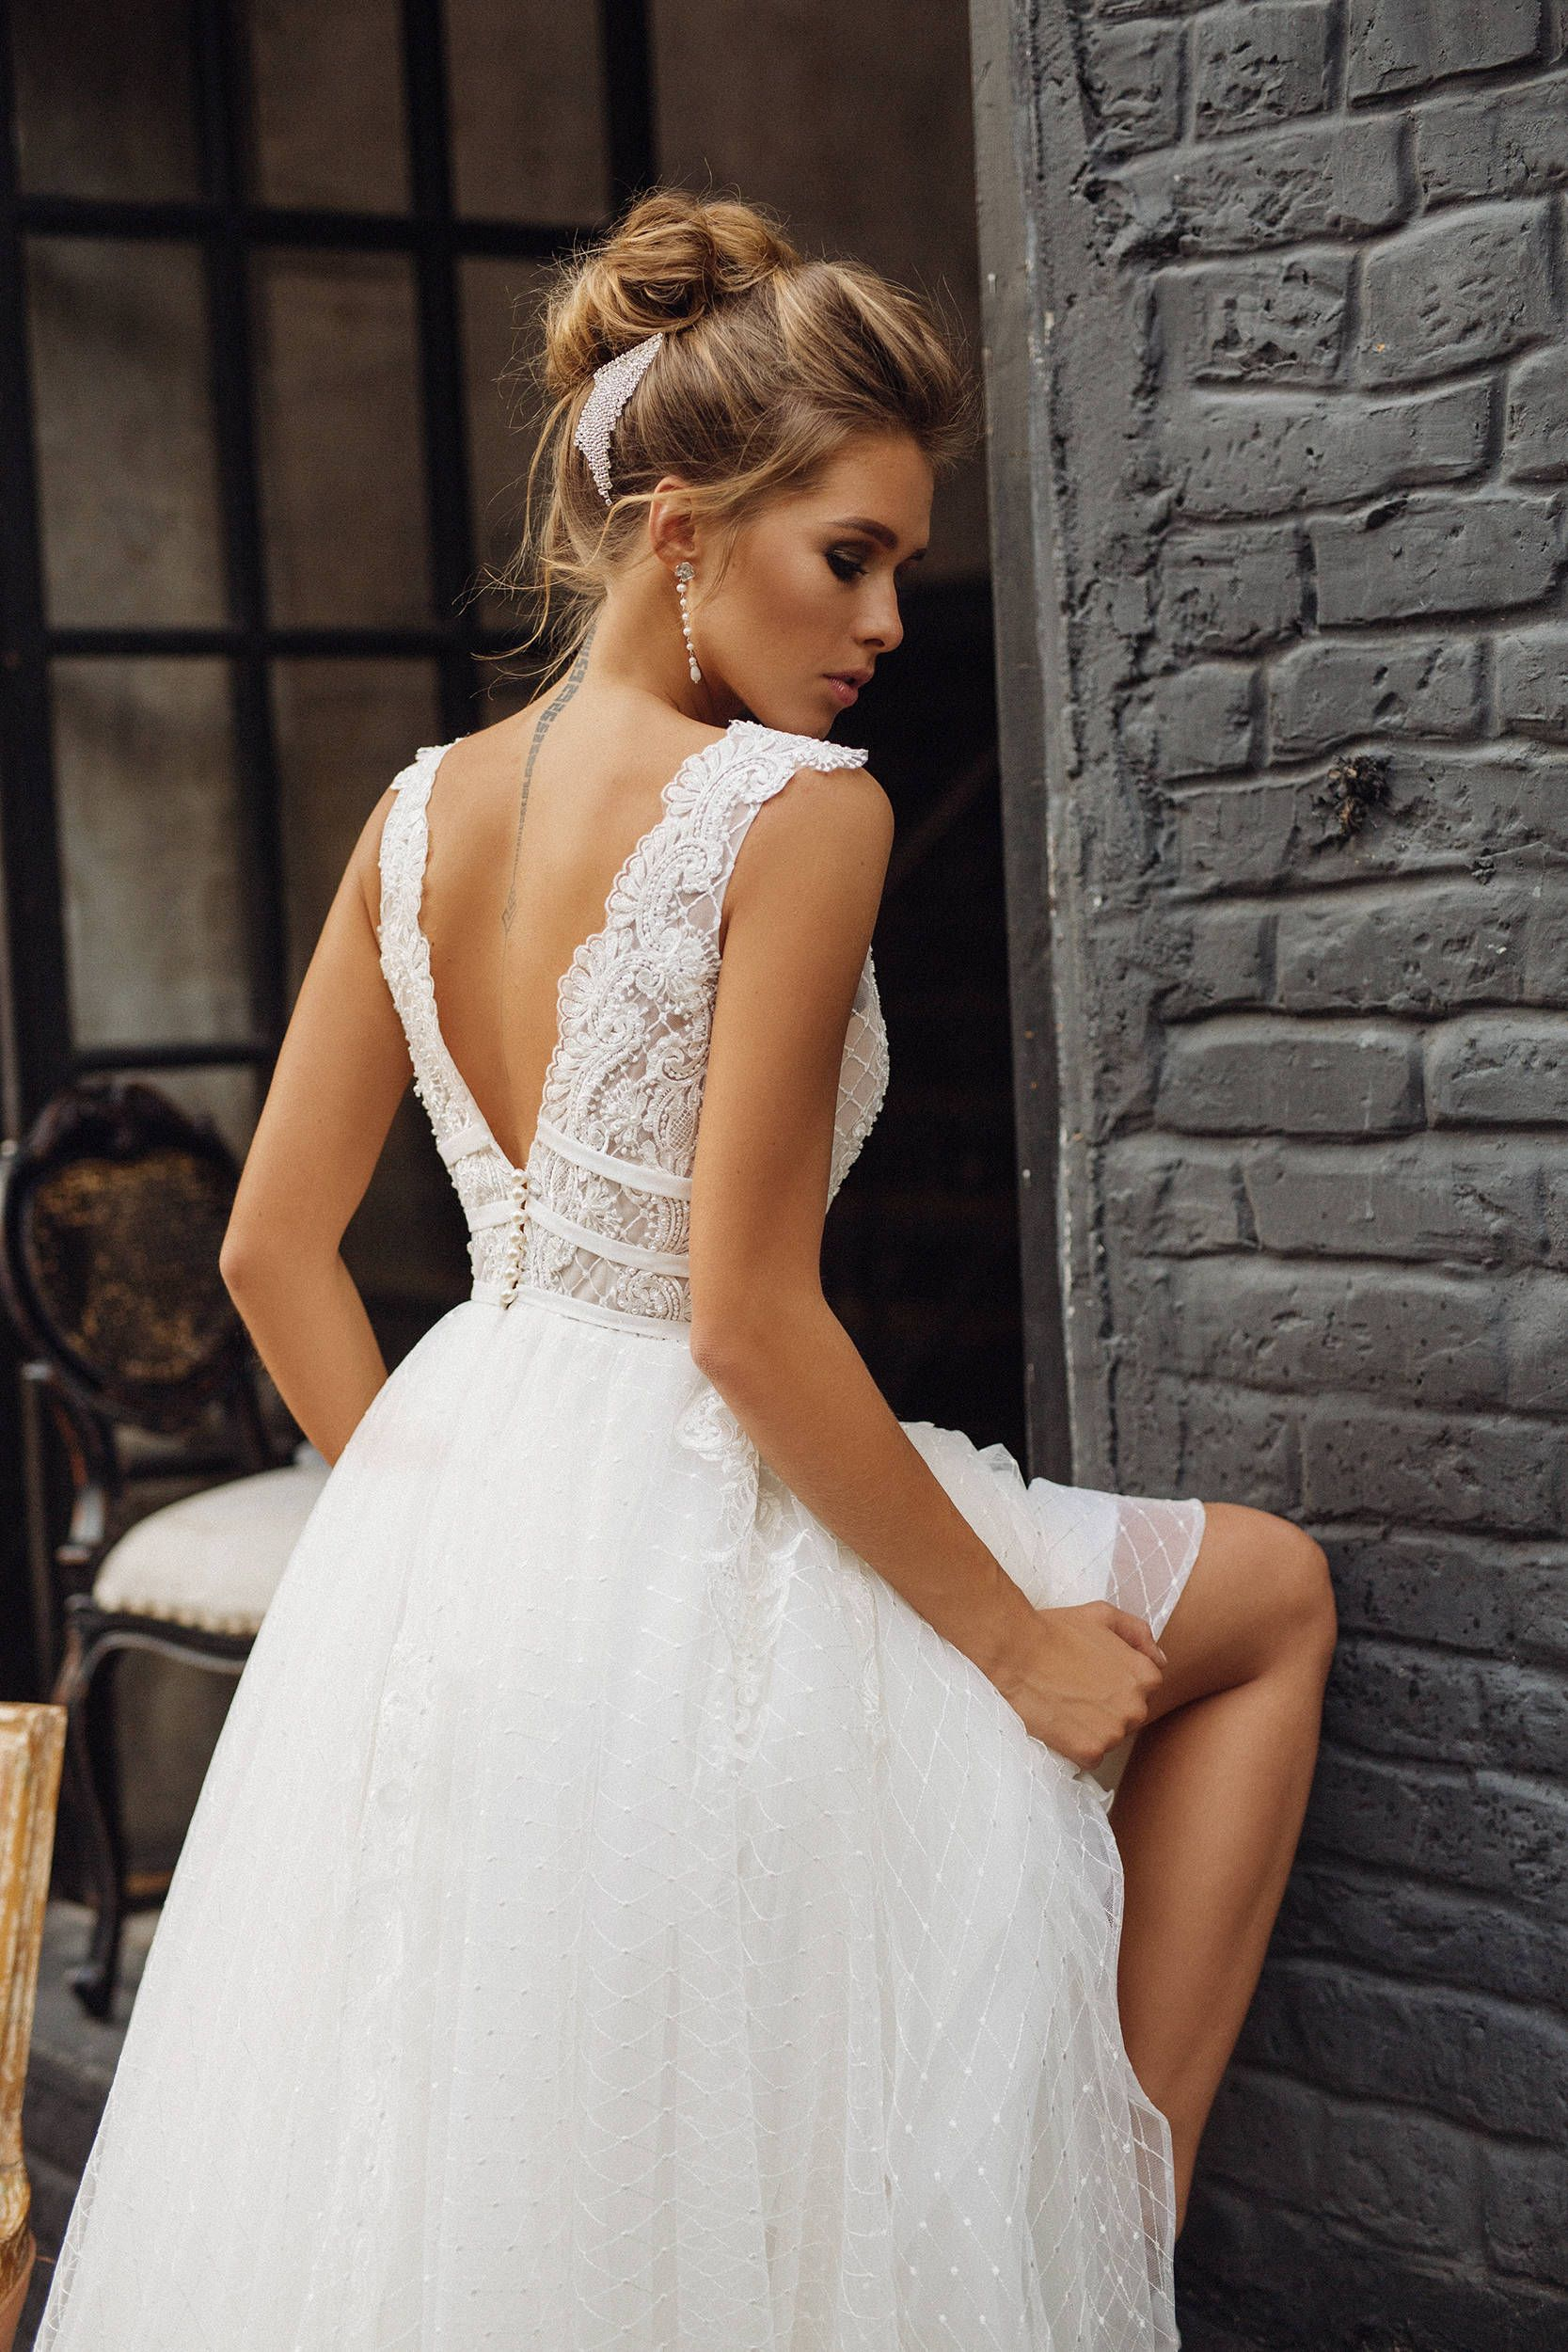 32+ Princess wedding dress with gloves ideas in 2021